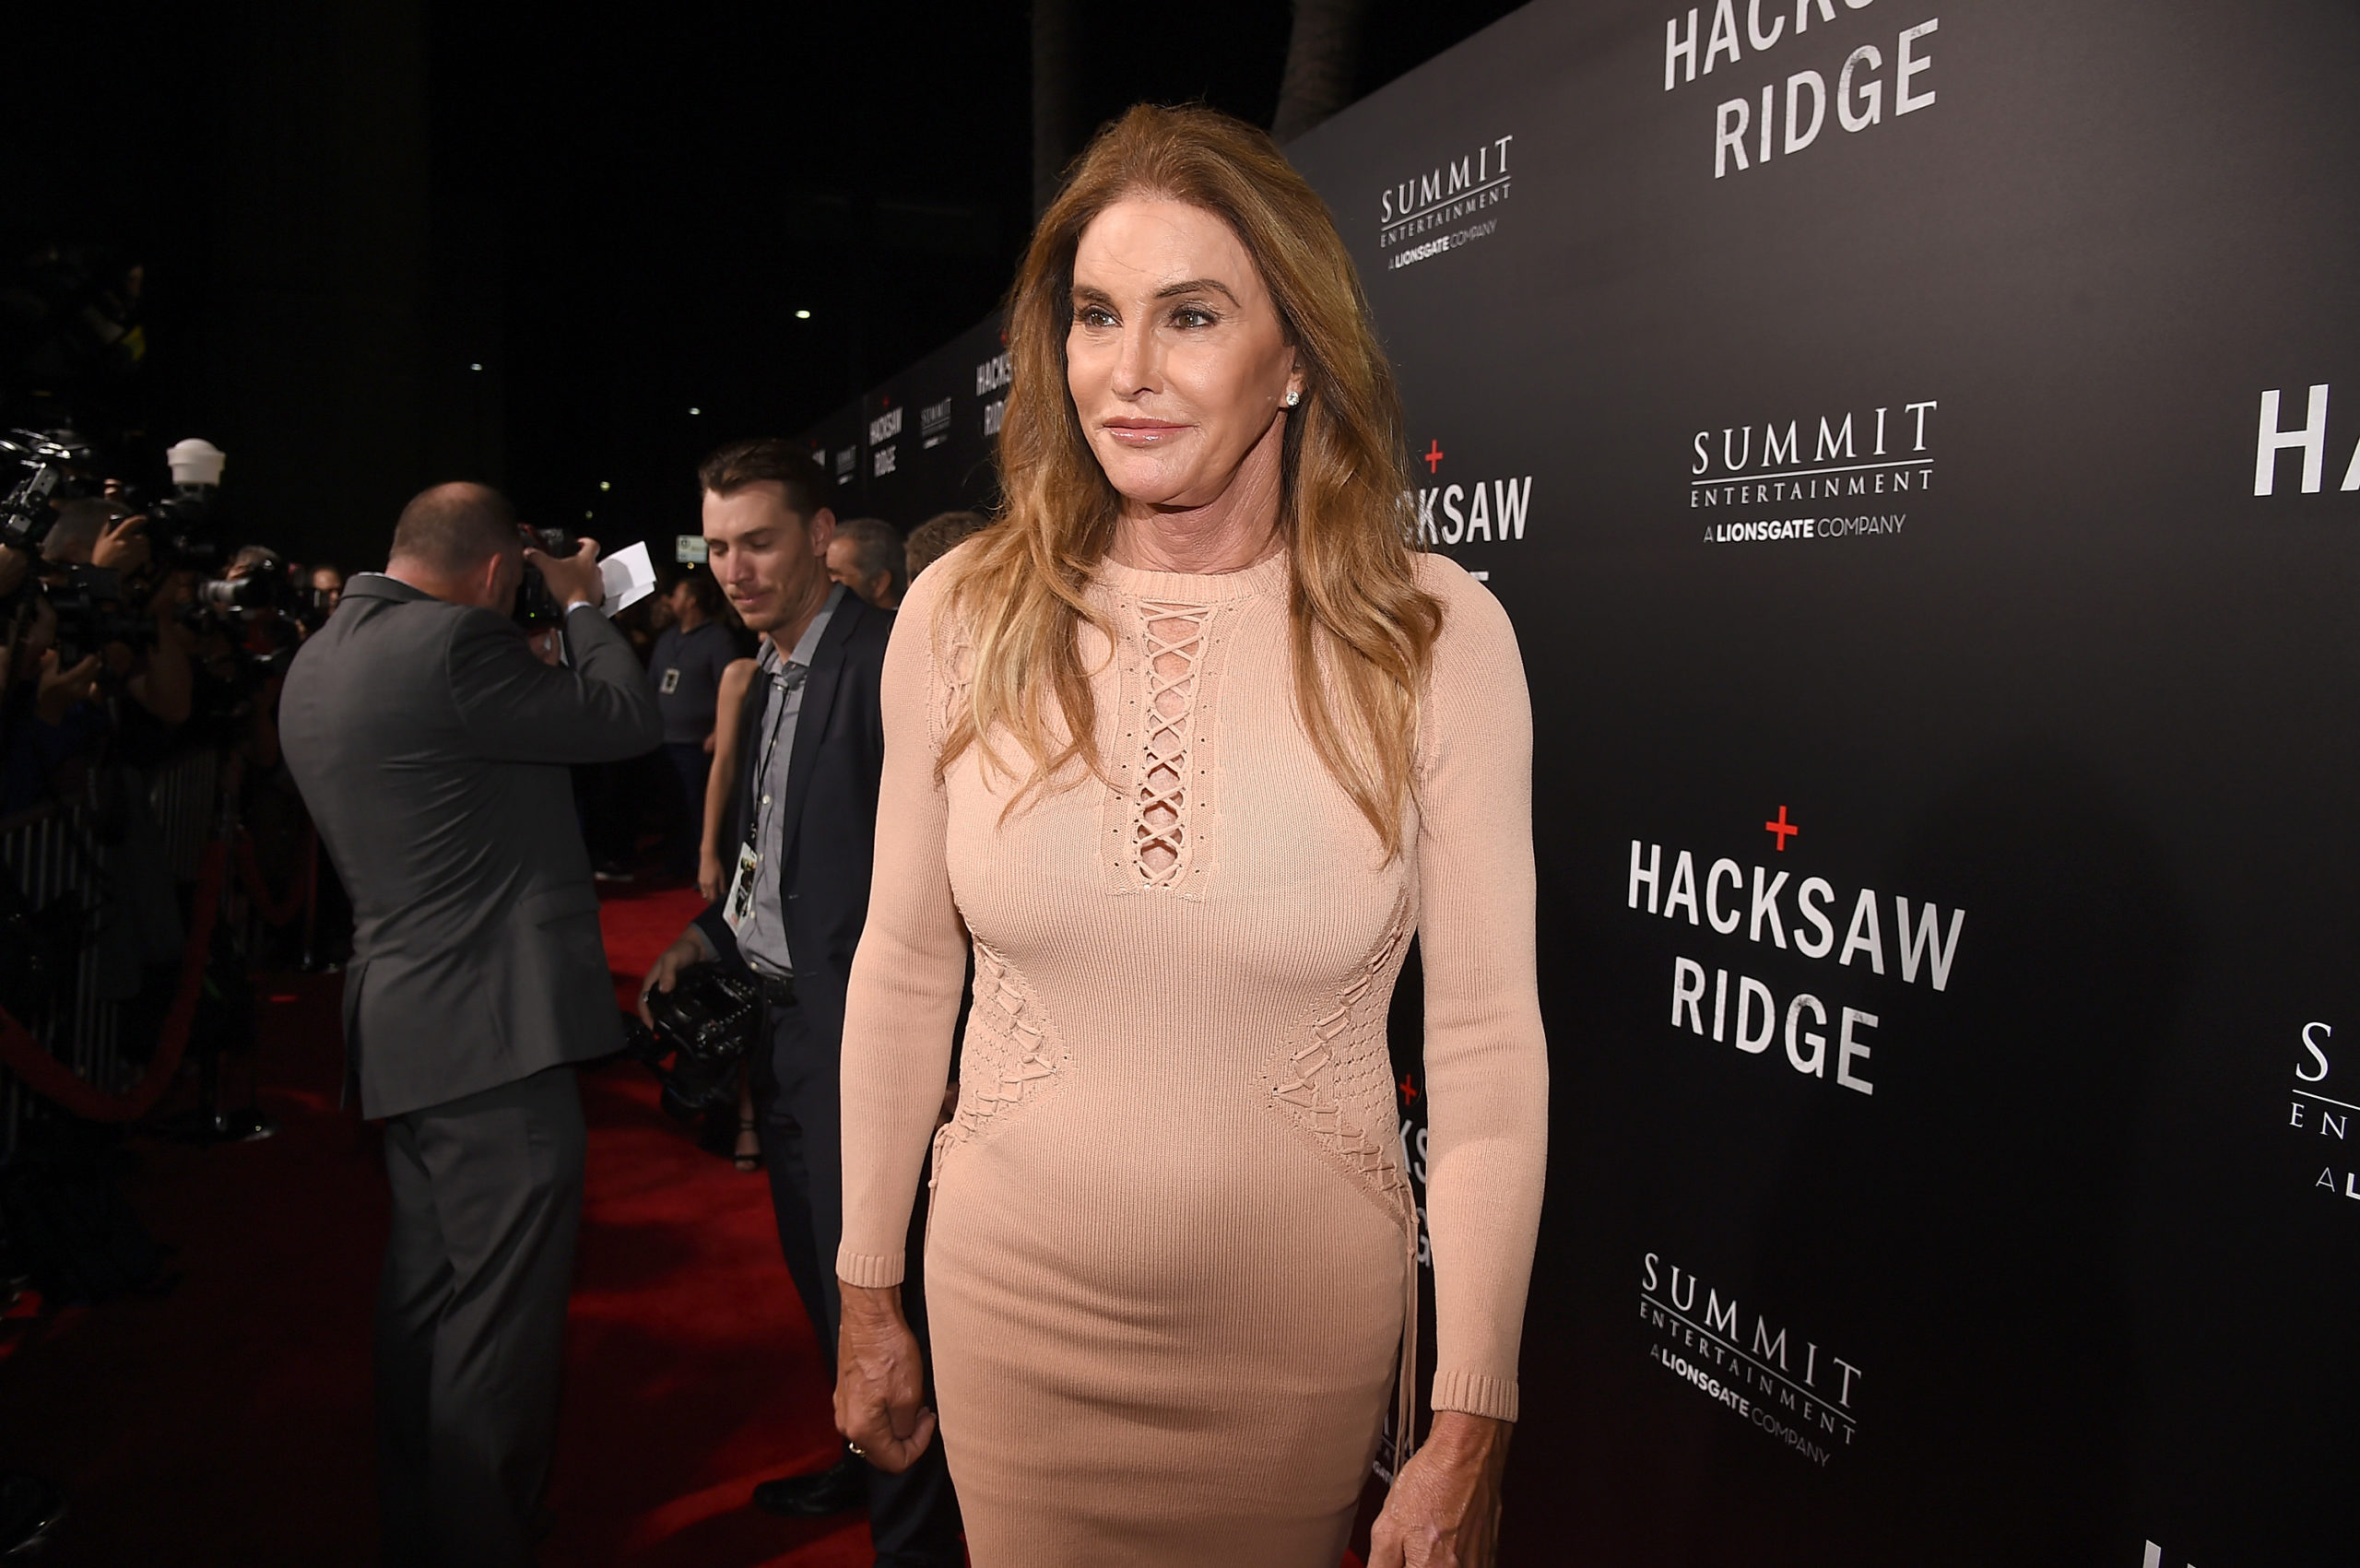 Caitlyn Jenner attends the screening of Summit Entertainment's